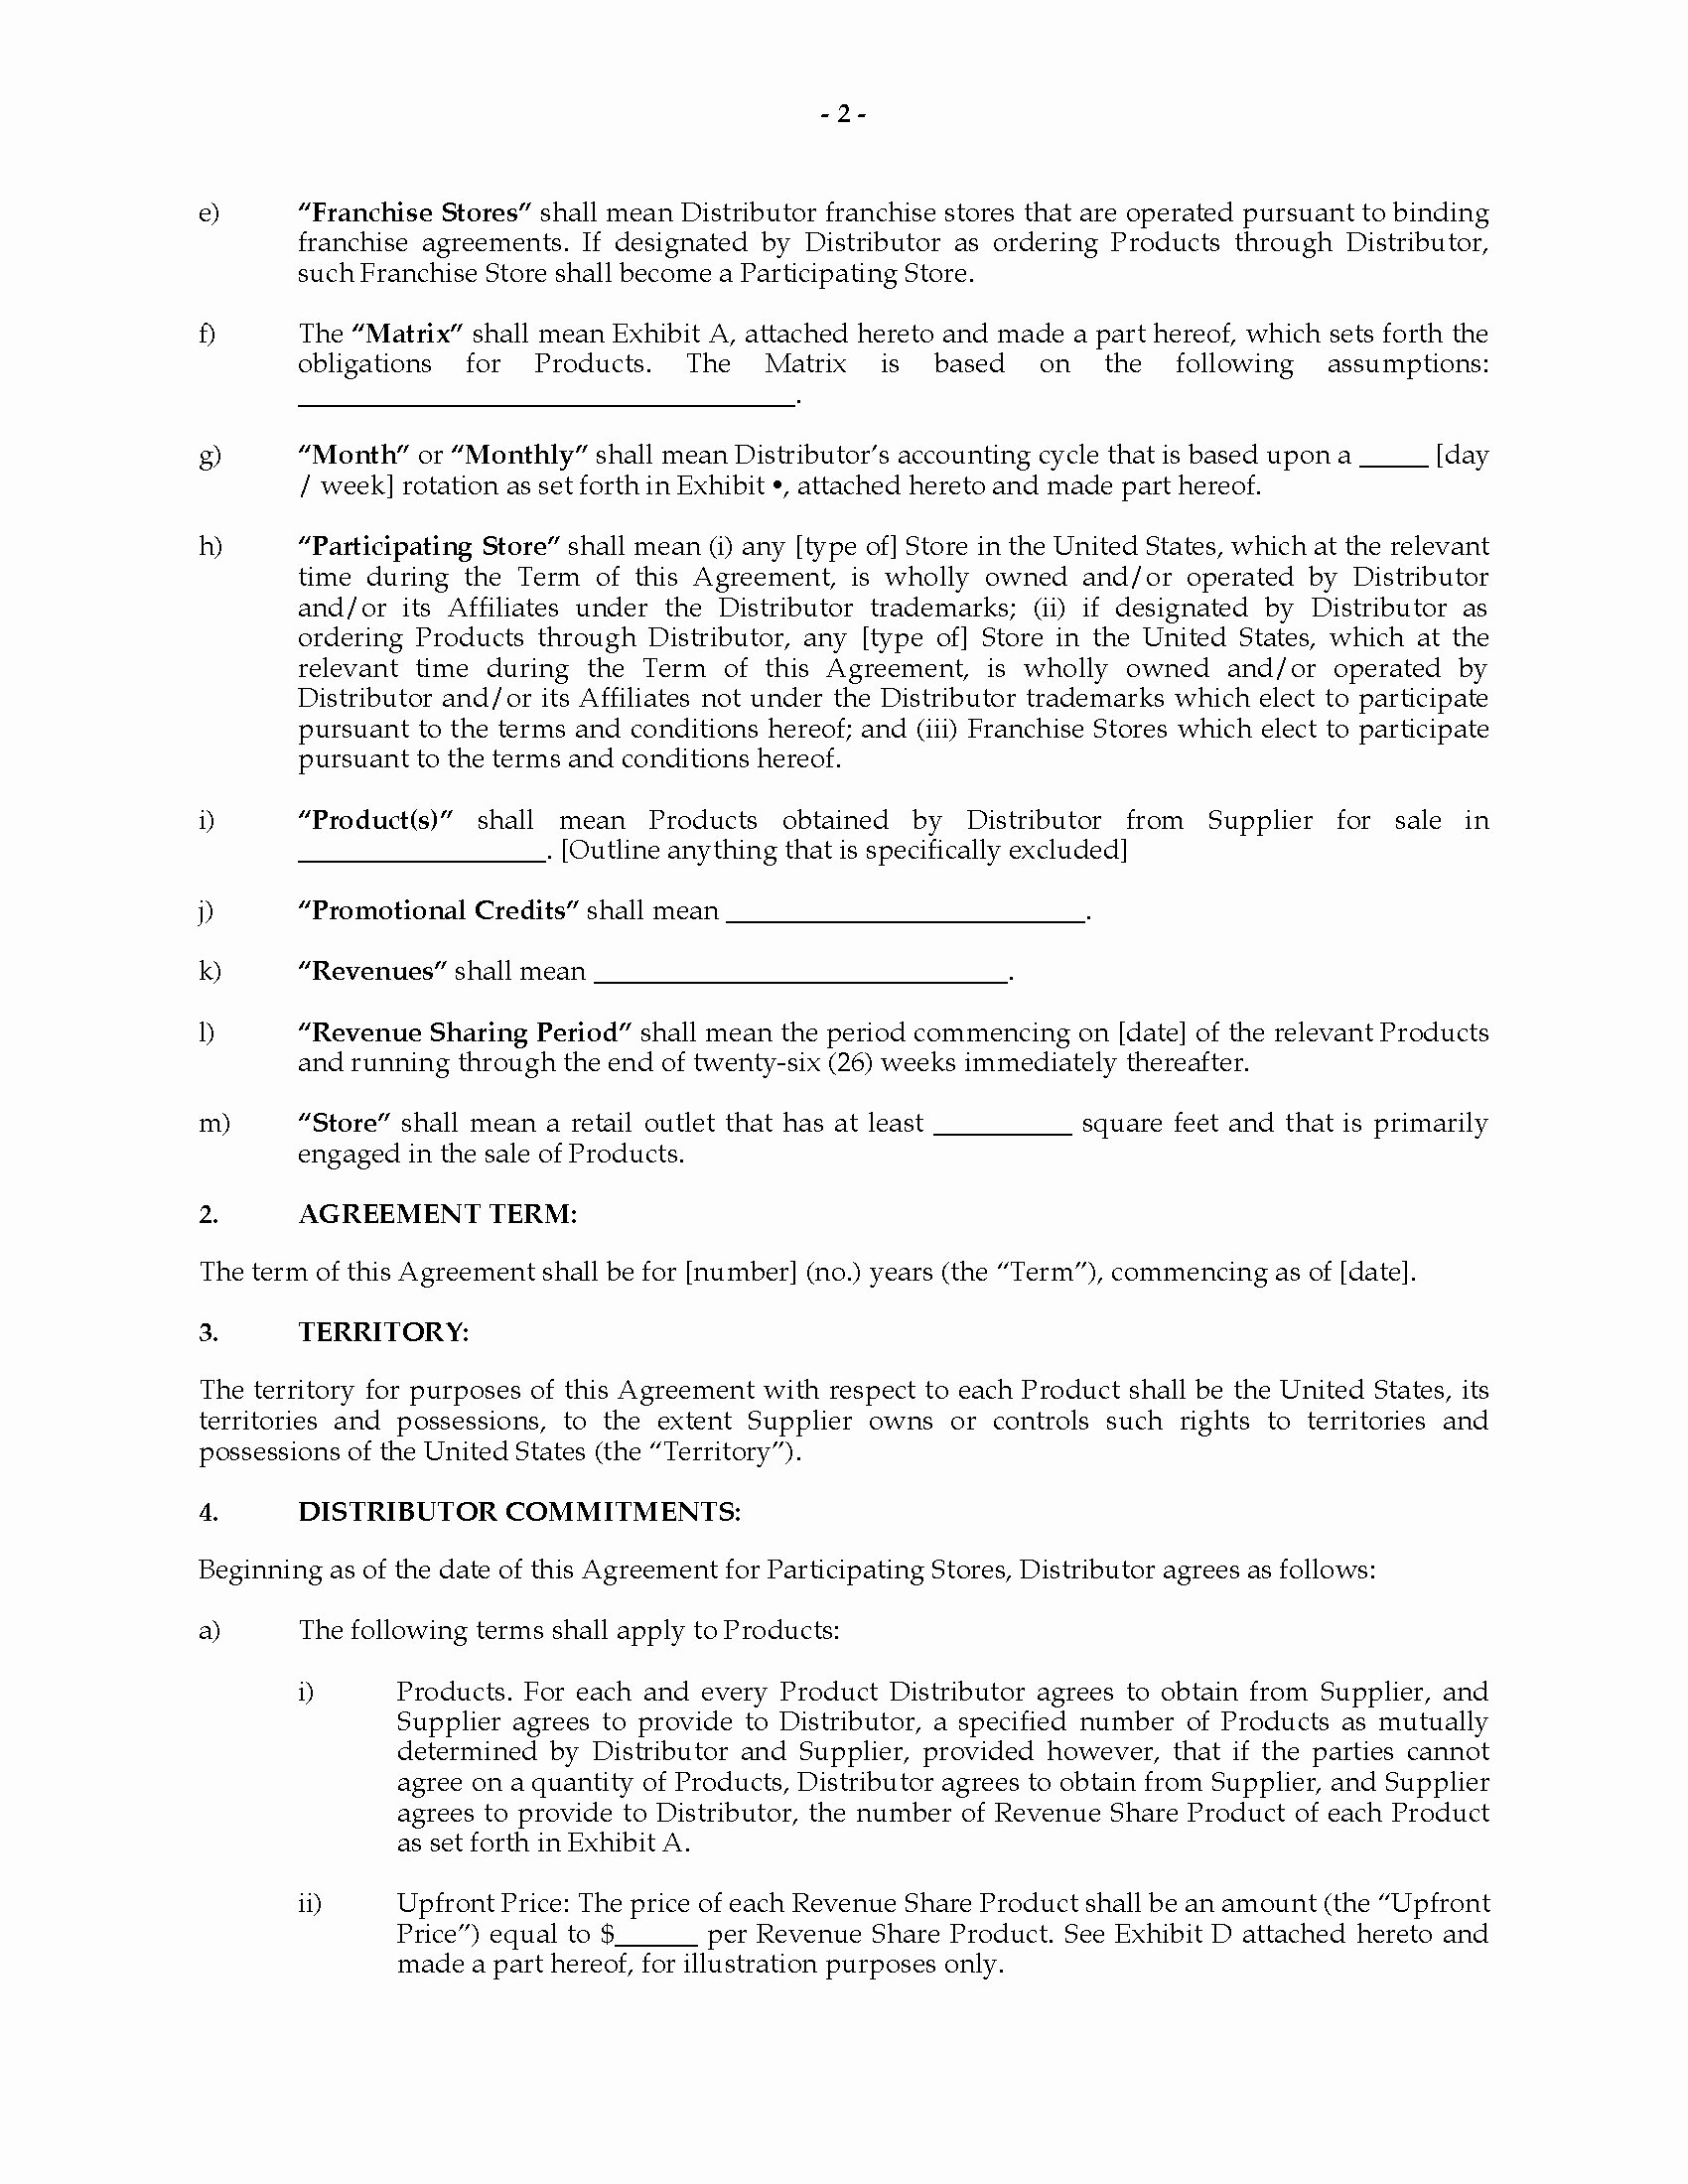 Revenue Sharing Agreement Template Lovely Usa Revenue Sharing Agreement with Franchisor